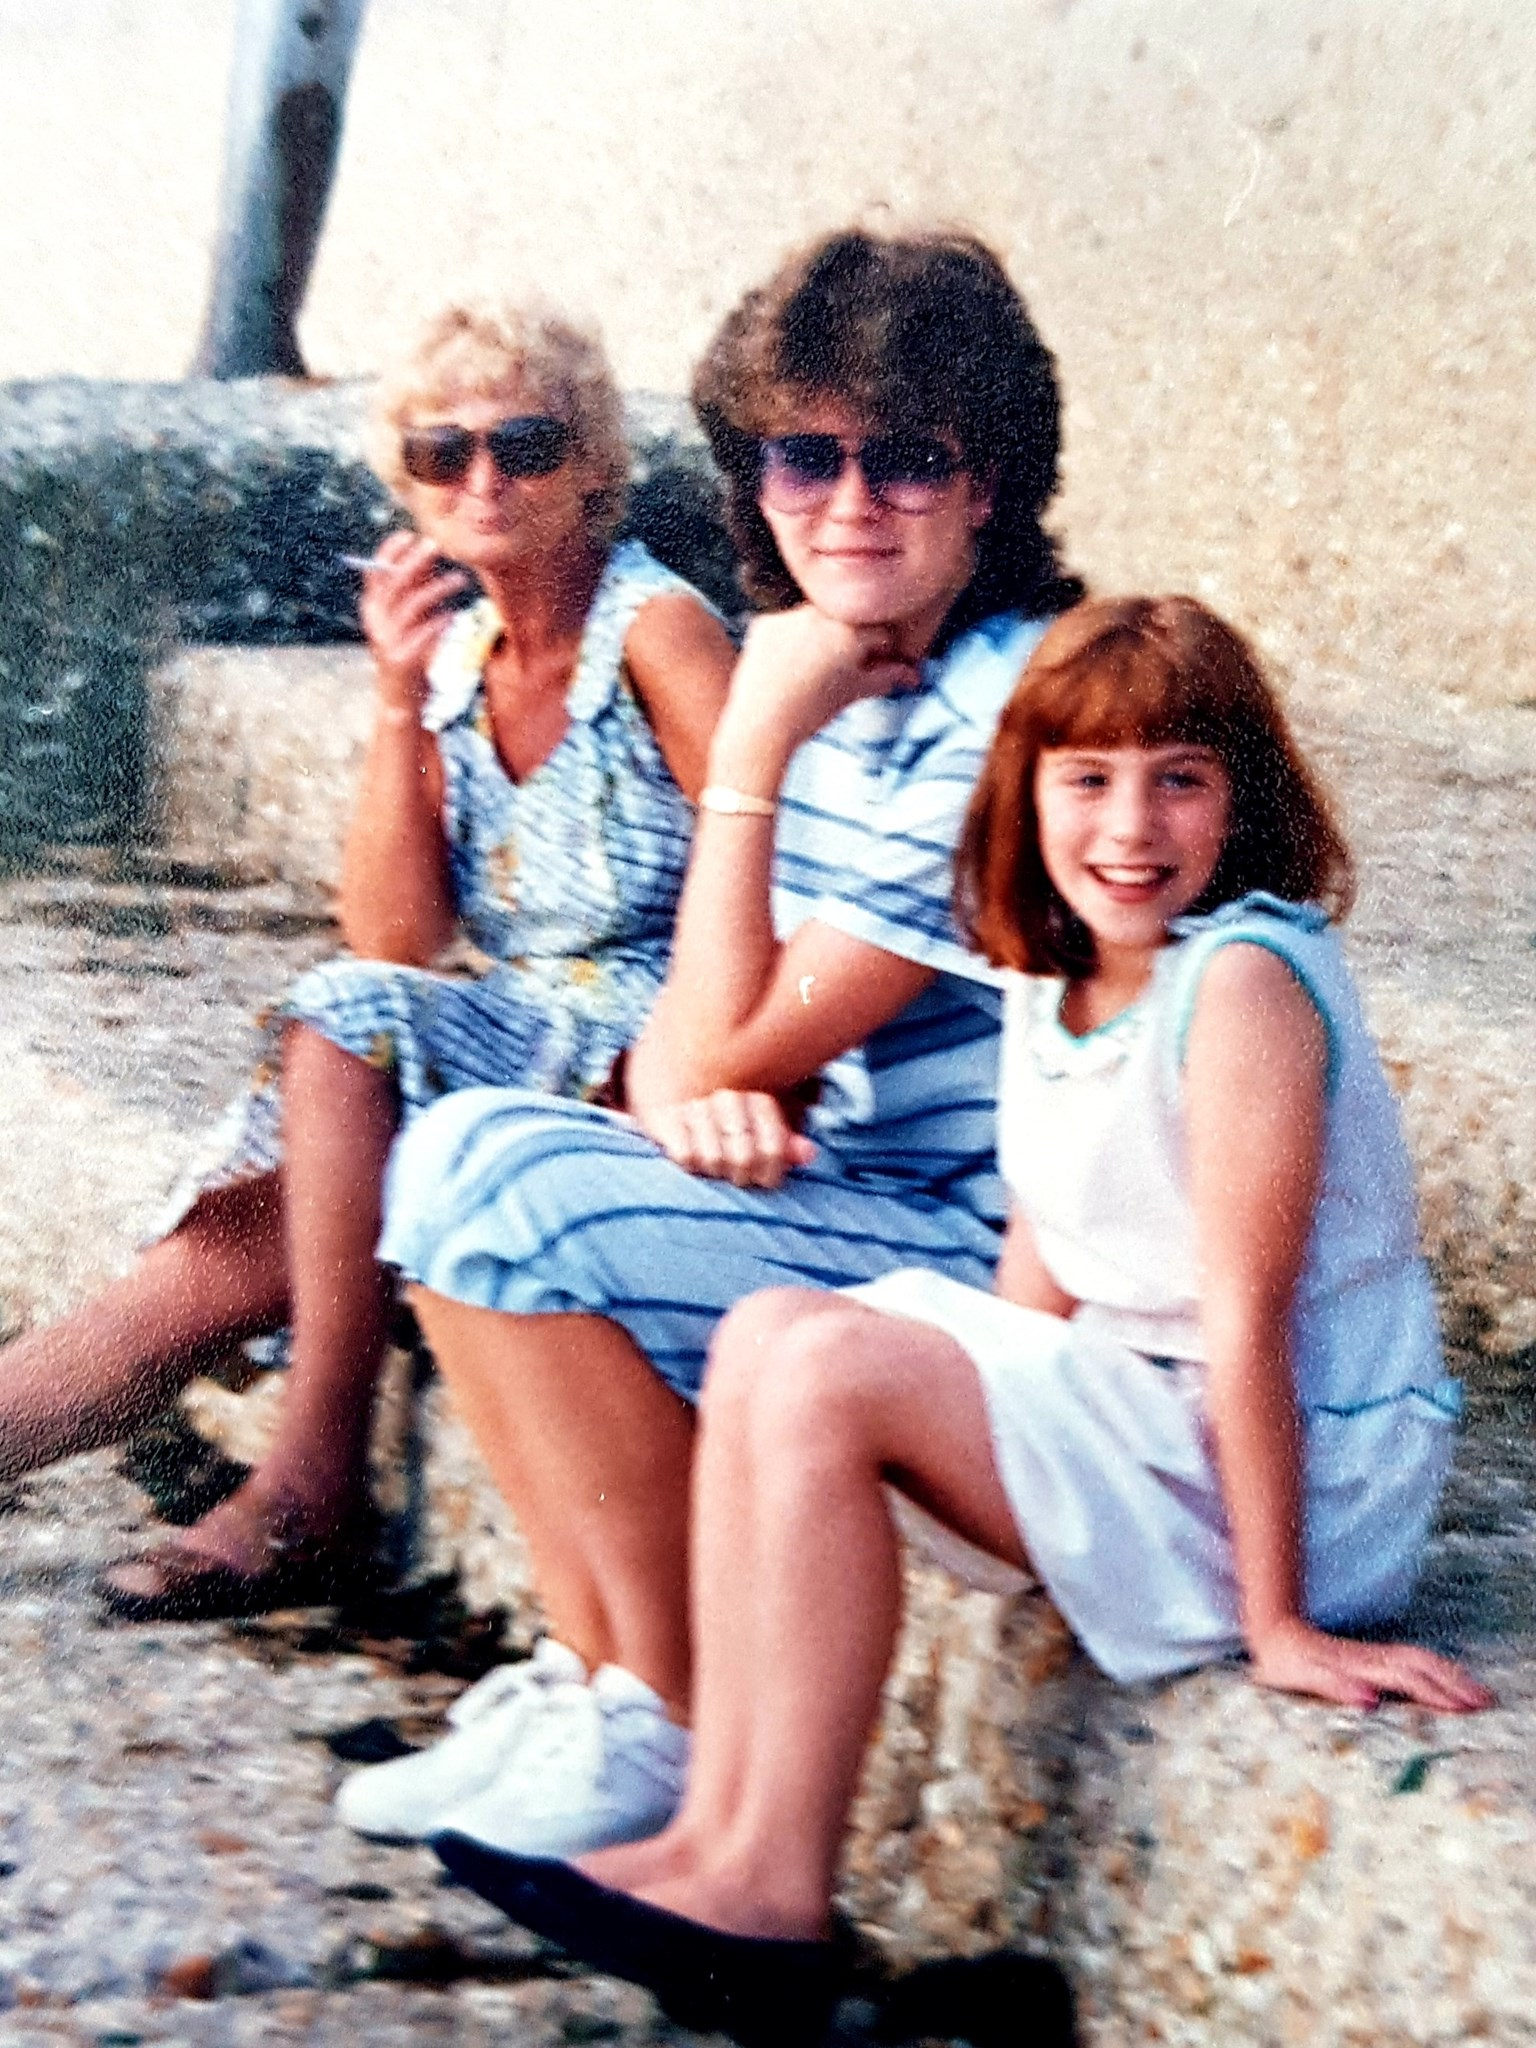 Lucy with Nanan and Lynnette at Bognor Regis